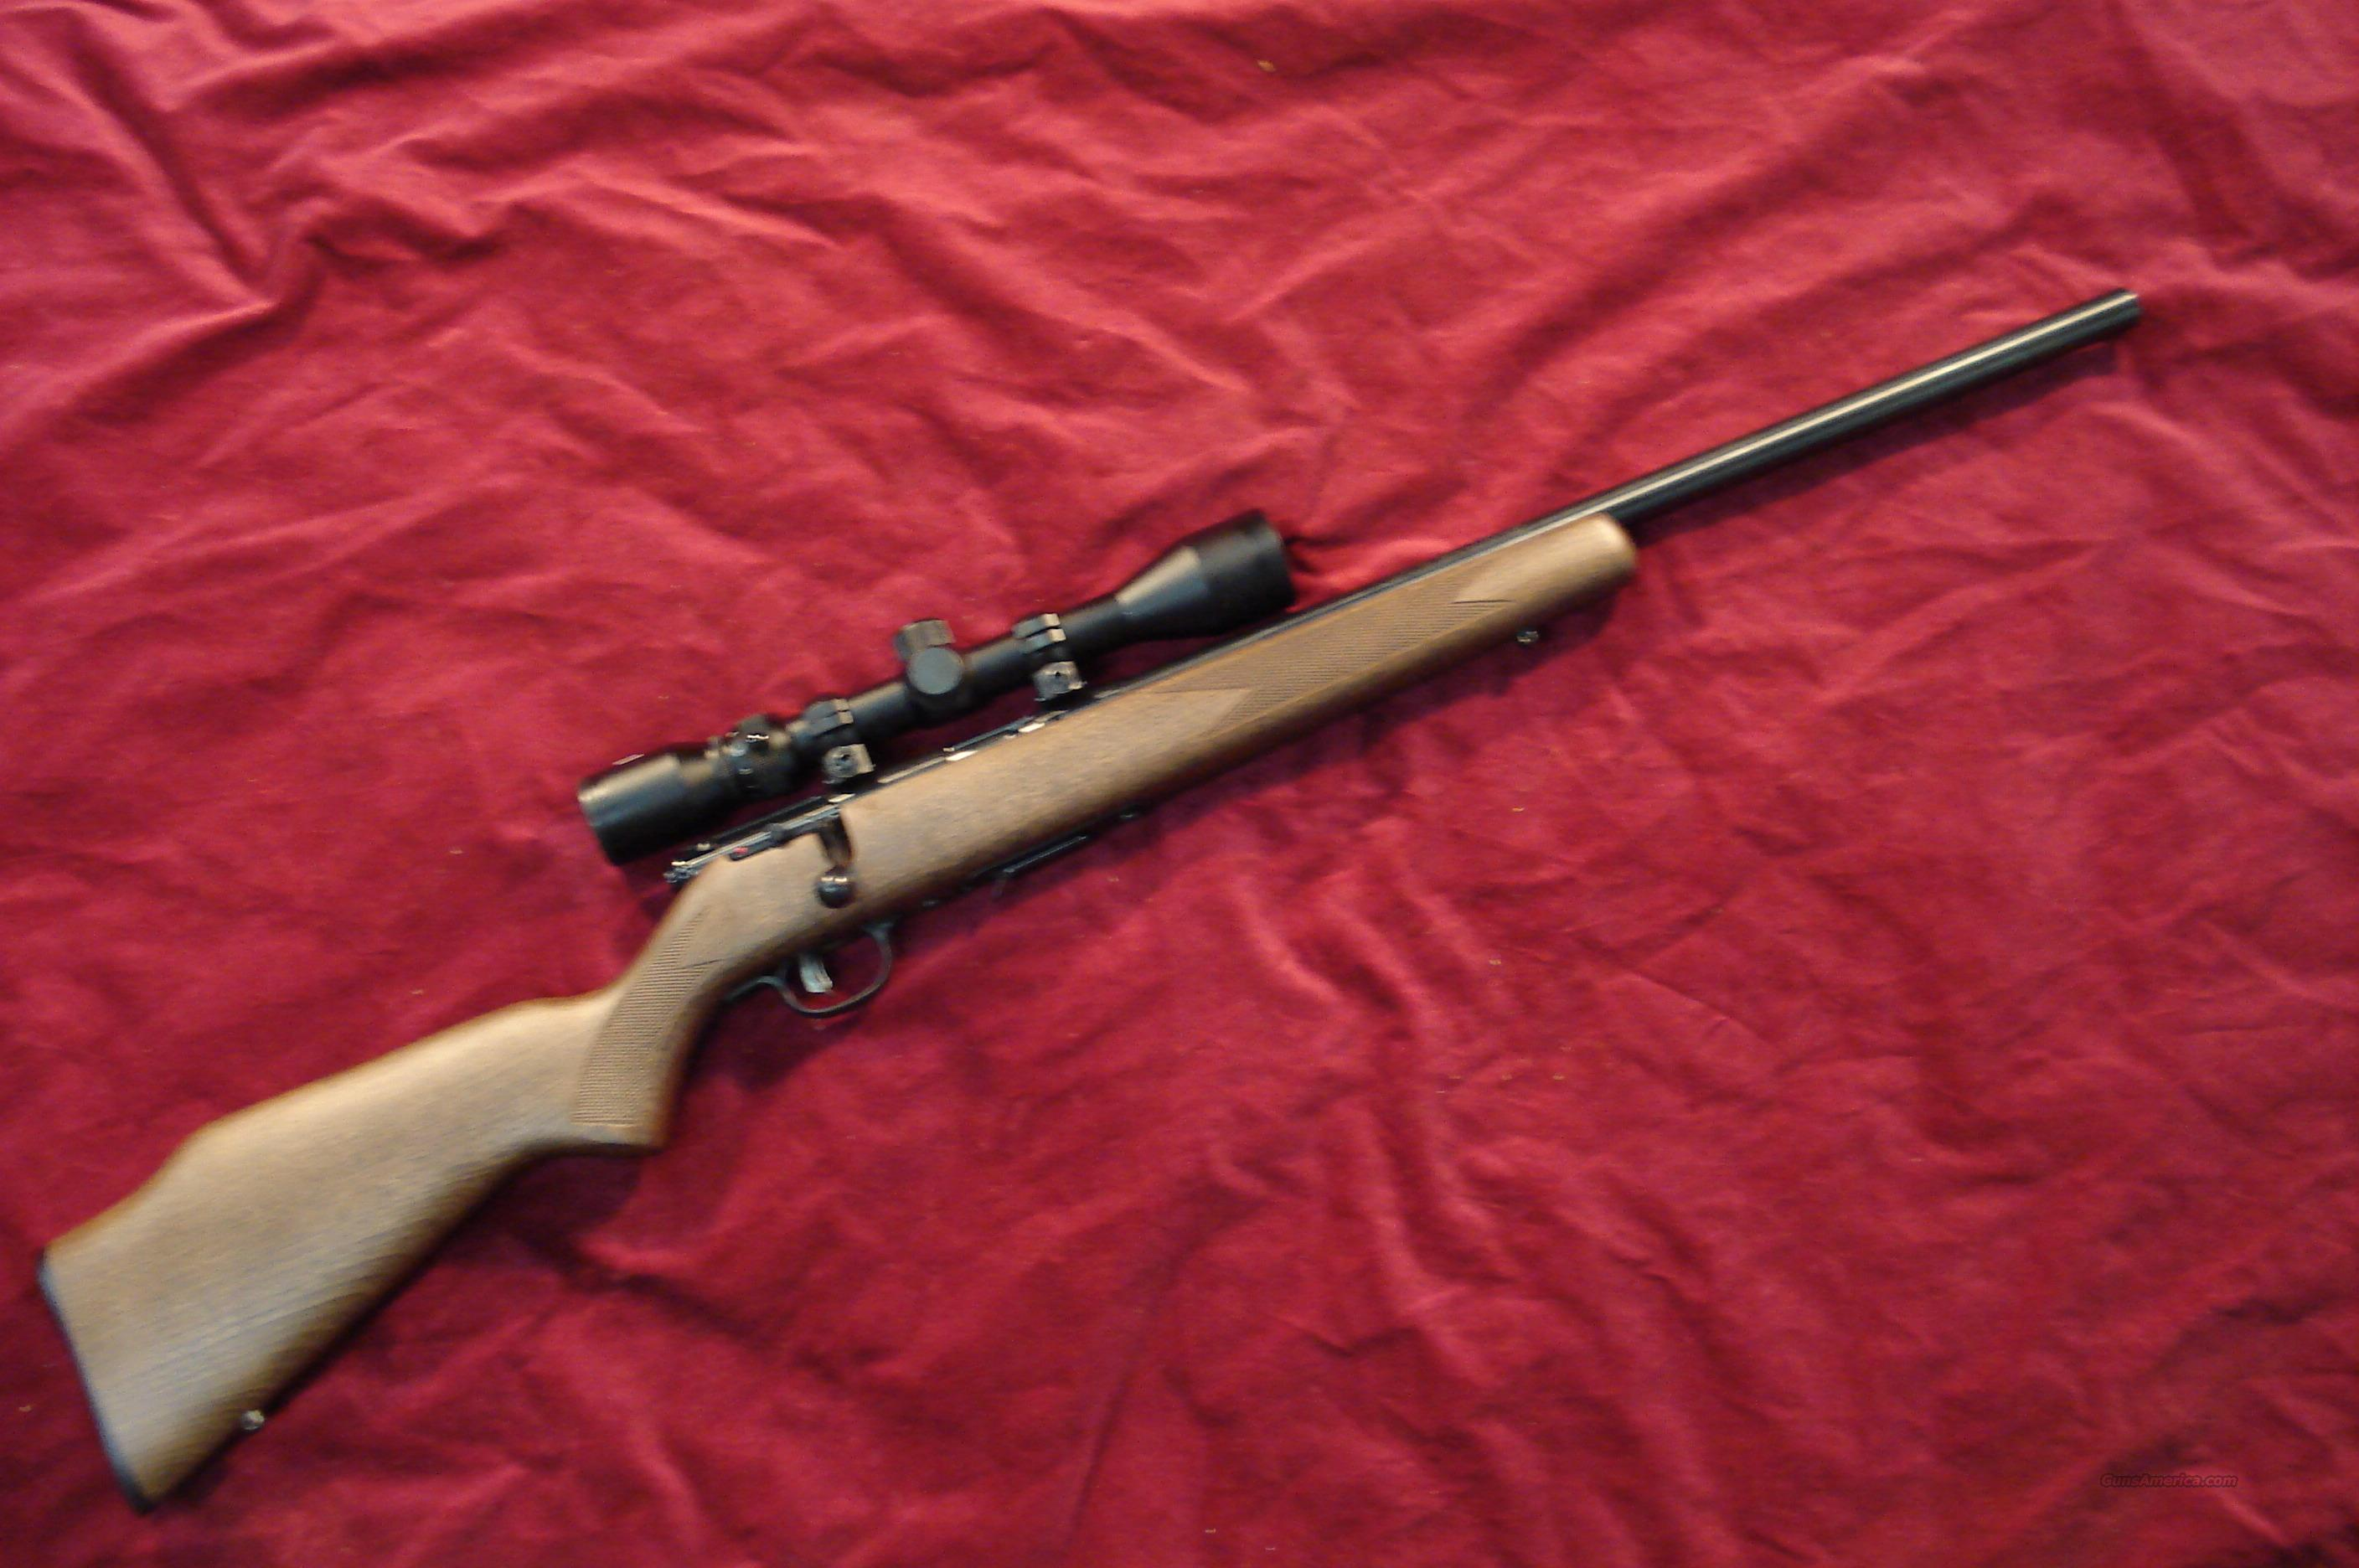 SAVAGE 17HMR ACCUTRIGGER HEAVY BARREL WOOD STOCK SCOPE PACKAGE NEW (93R17GVXP)  Guns > Rifles > Savage Rifles > Accutrigger Models > Sporting